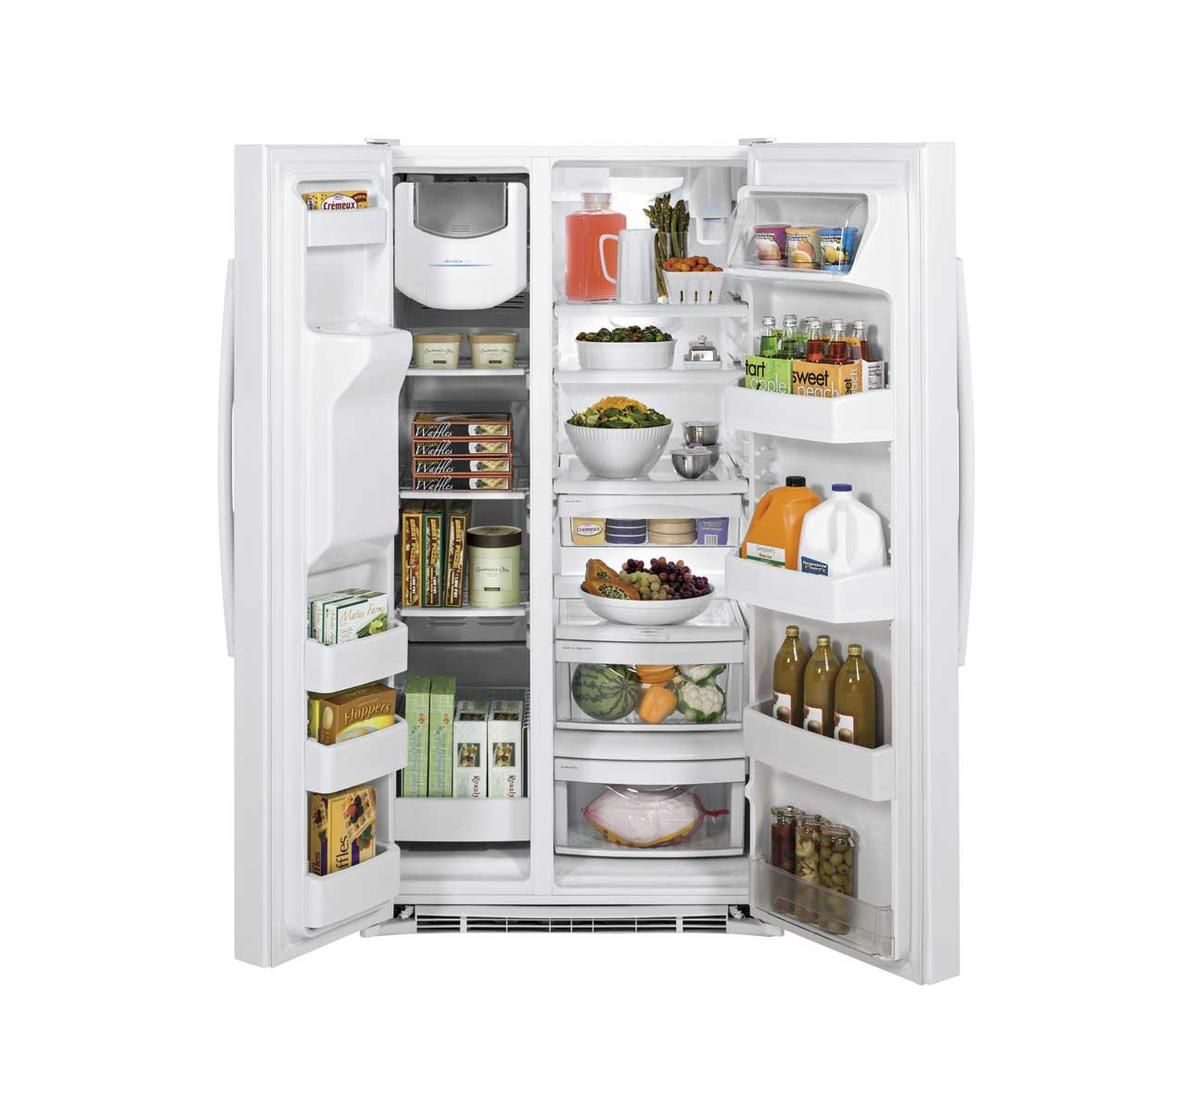 Picture of G.E. SIDE-BY-SIDE REFRIGERATOR